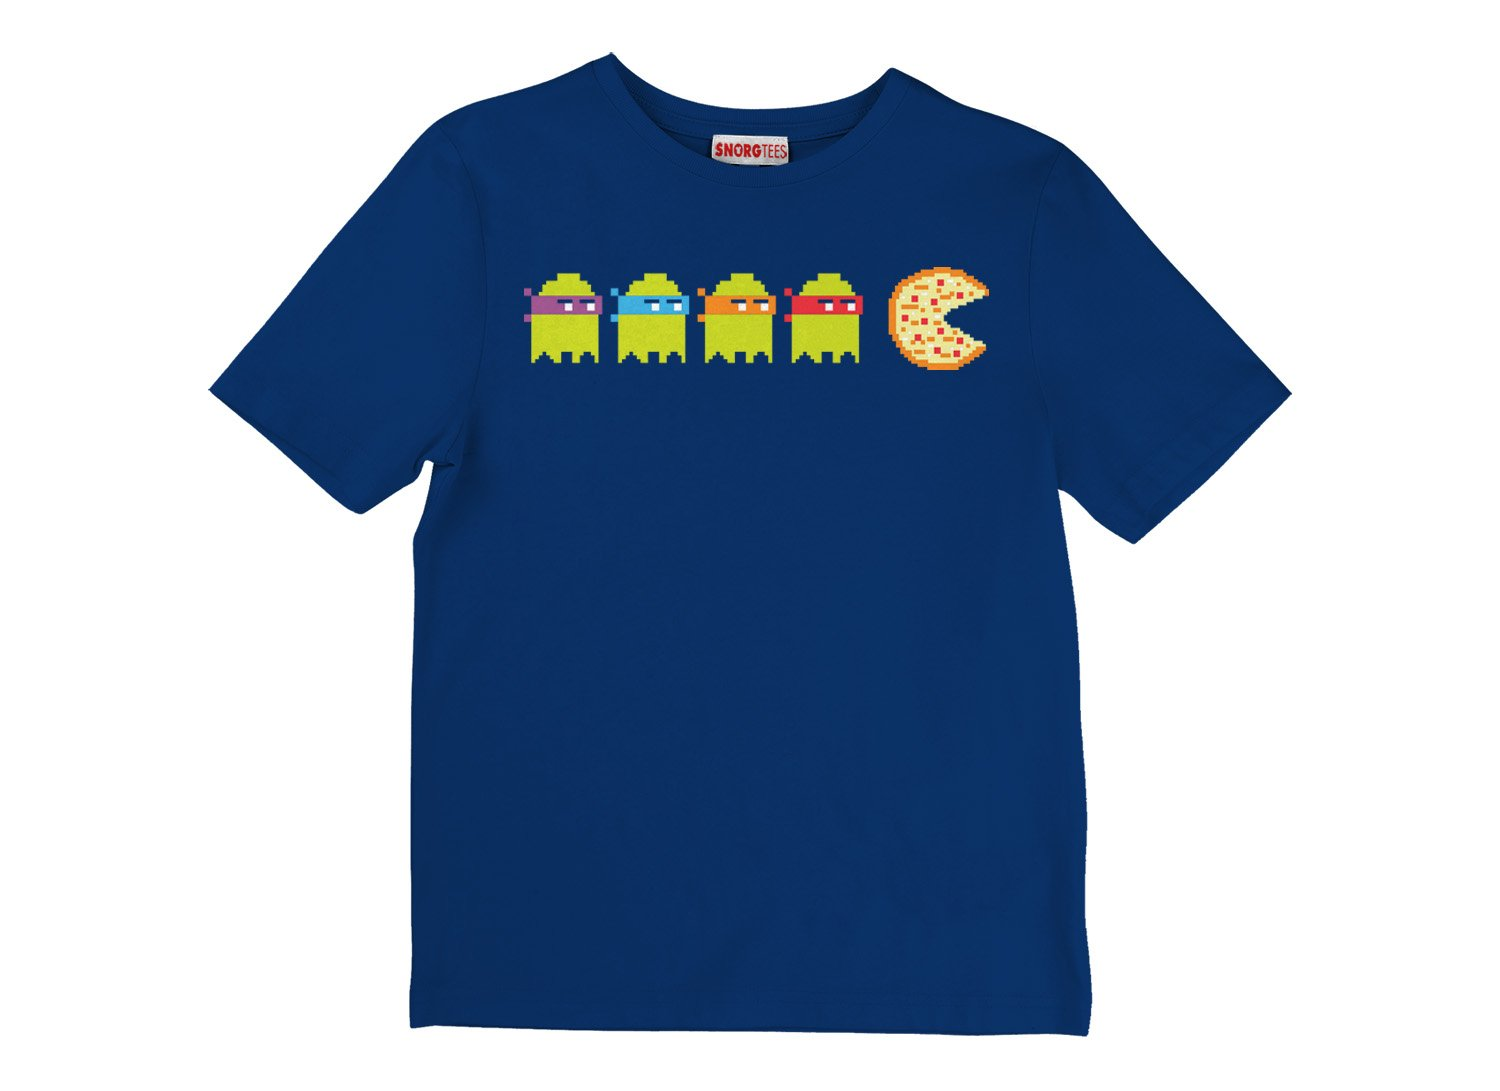 Teenage Mutant Ninja Ghosts on Kids T-Shirt